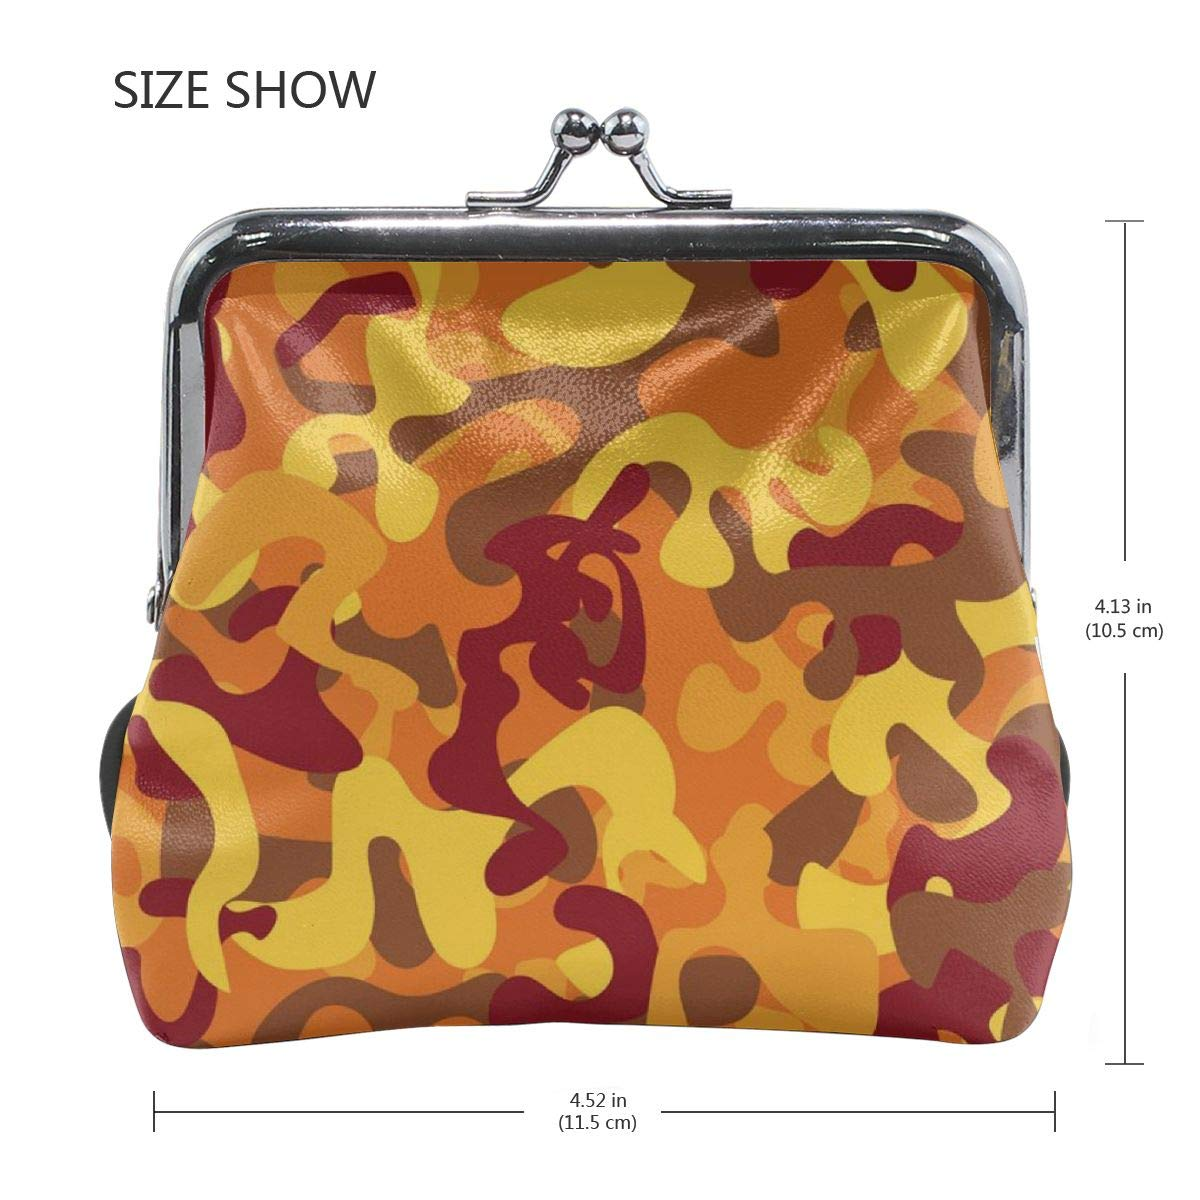 Poream Seamless Autumn Camouflage Customized Retro Leather Cute Classic Floral Coin Purse Clutch Pouch Wallet For Girls And Womens